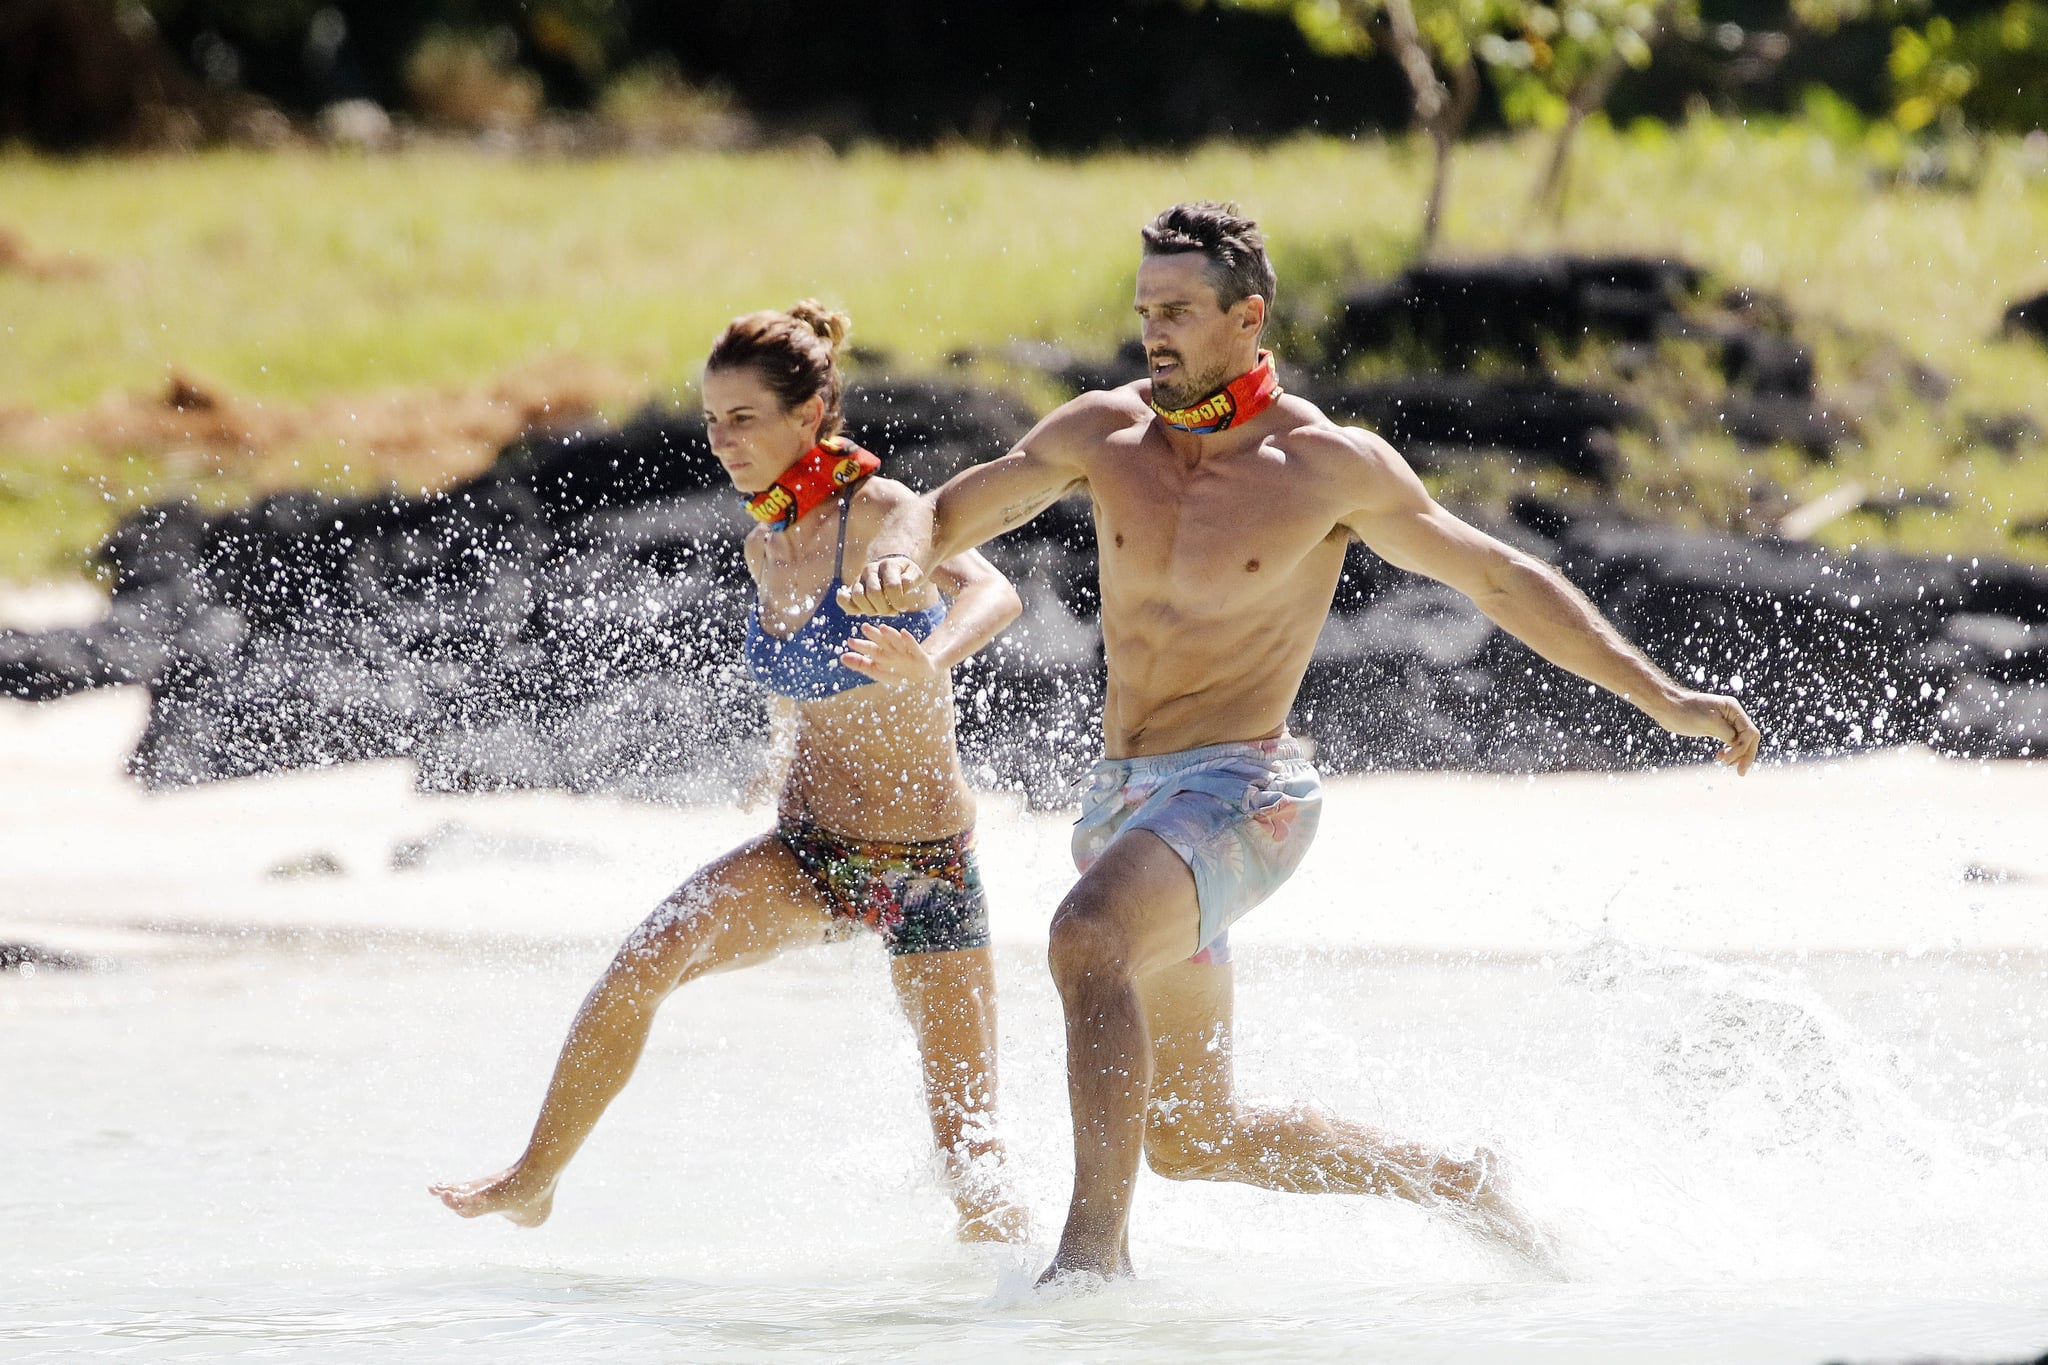 survivor australia - photo #5